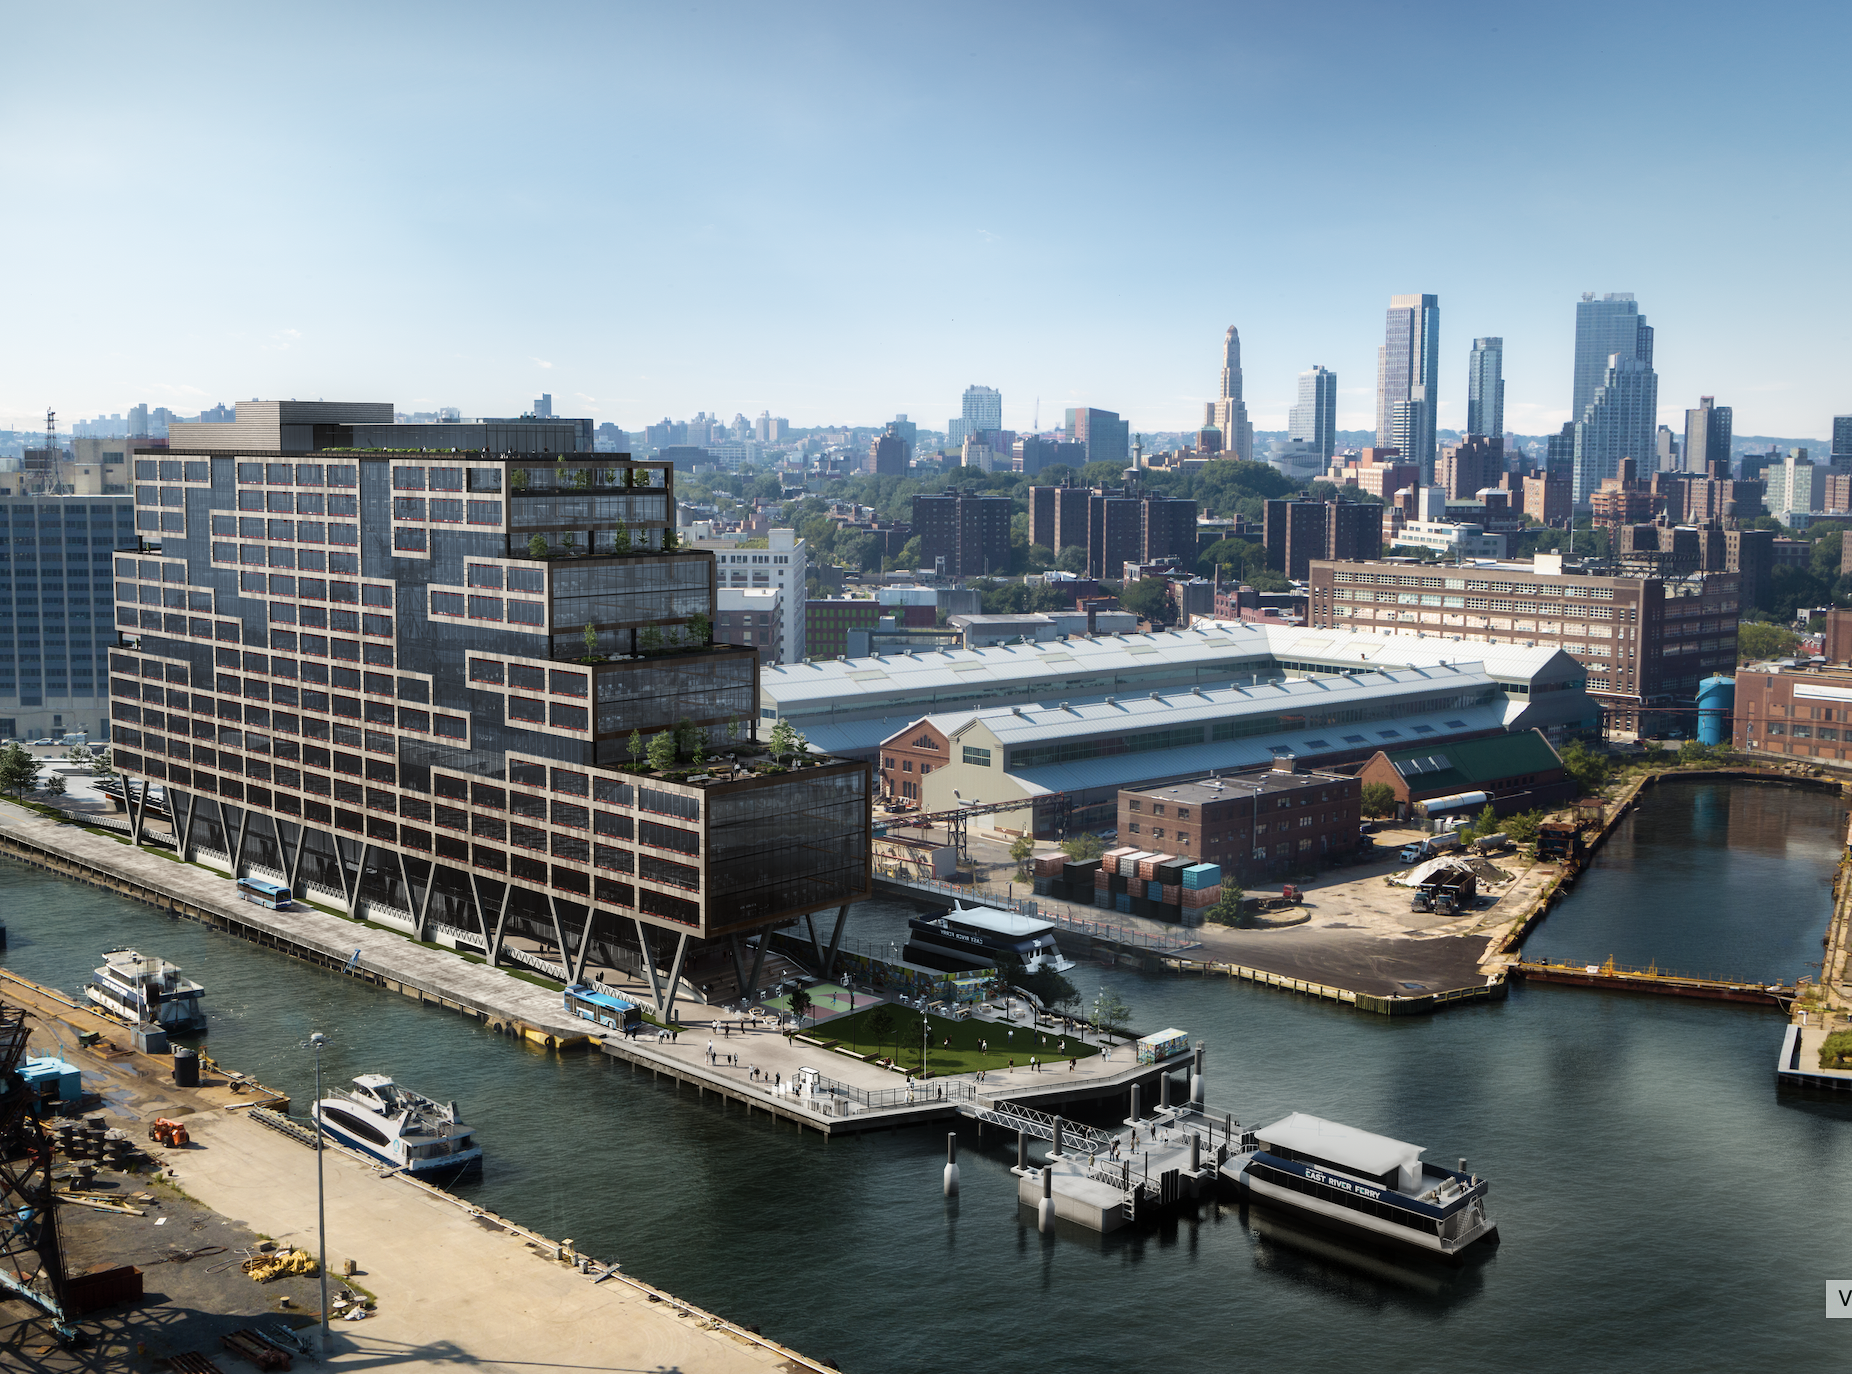 A 16-story waterfront building with a grid and large windows. The Manhattan skyline can be seen in the back.